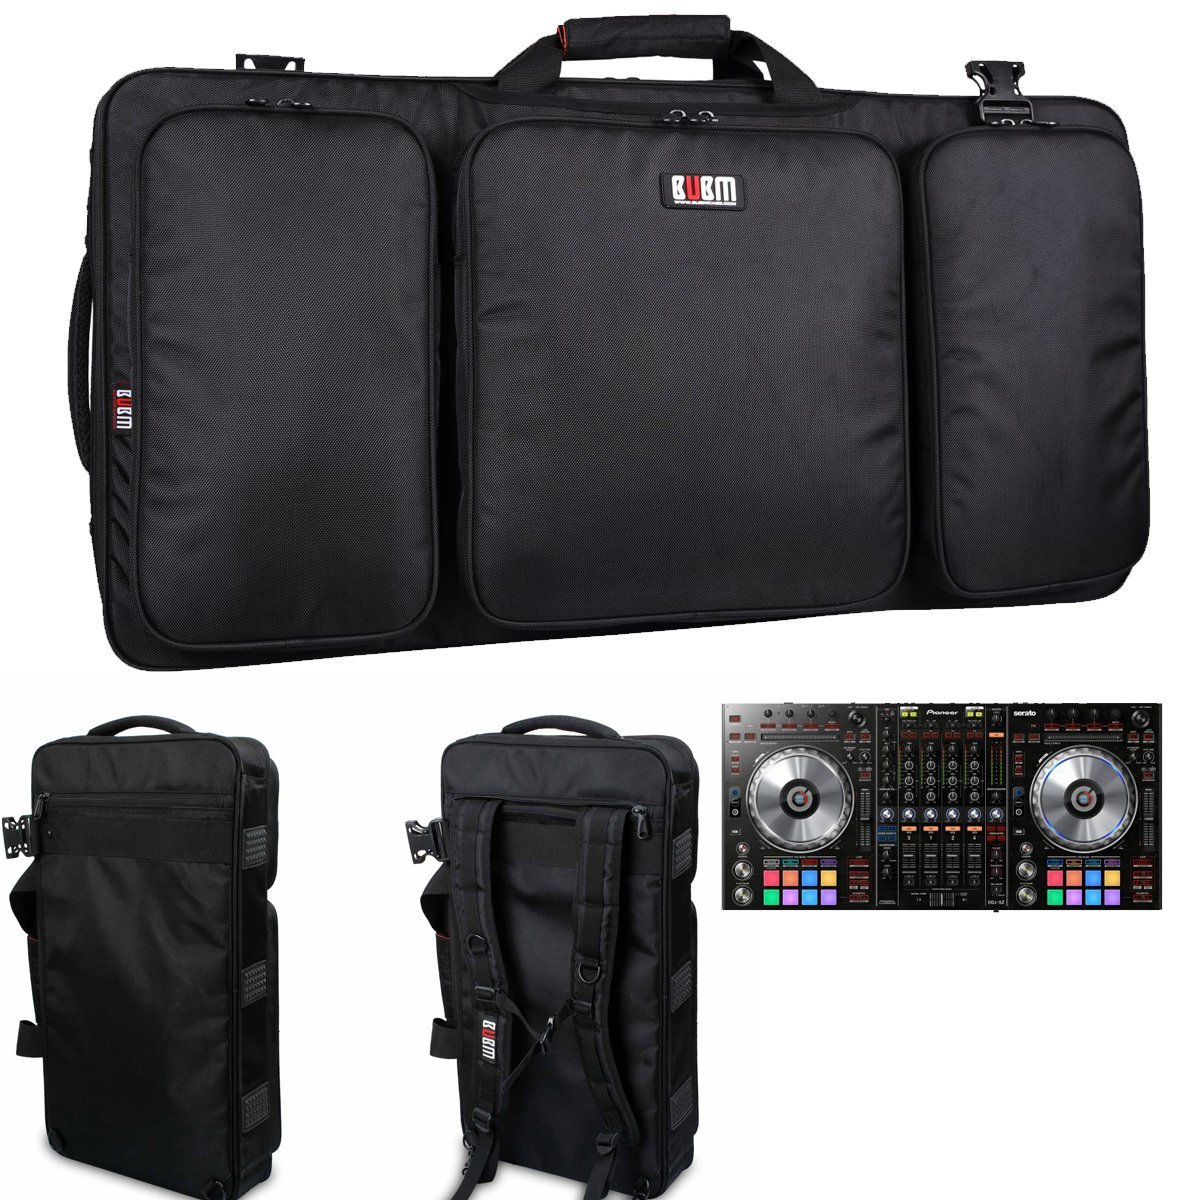 BUBM Shockproof Carrying Camera Case for Gopro Hero Professional Protector Bag Travel Packsack For Pioneer Pro DDJ SZ DJ bubm shockproof carrying camera case for gopro hero professional protector bag travel packsack for pioneer pro ddj sz dj